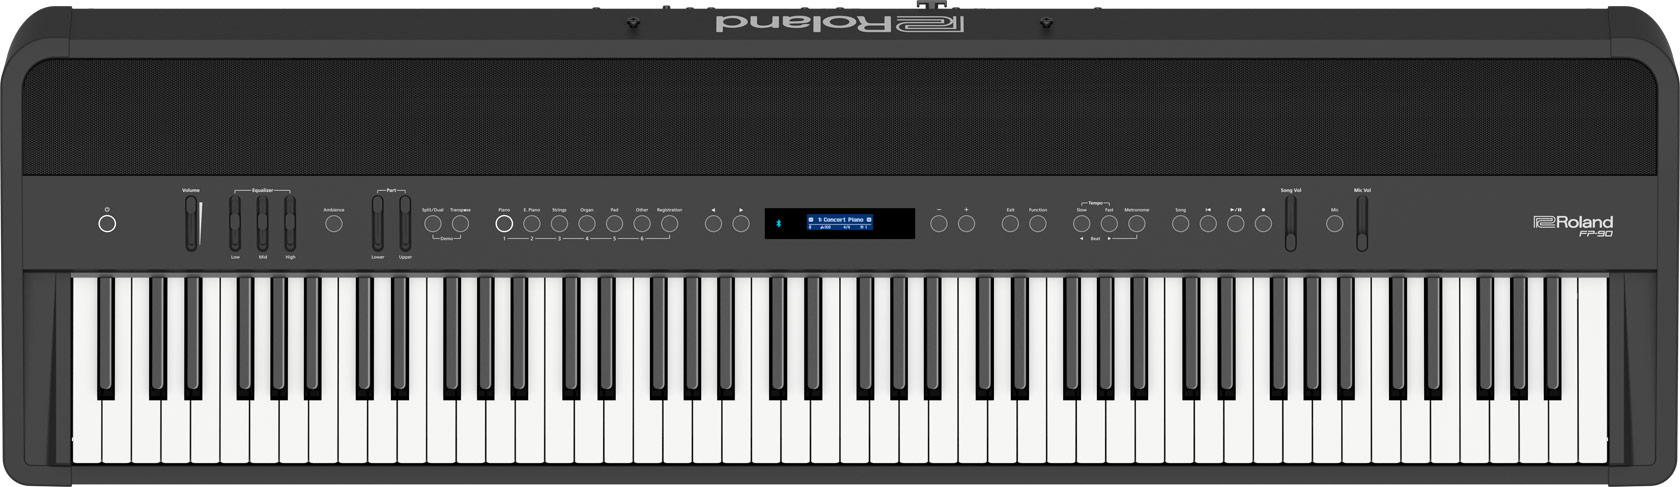 Roland FP-90 Digital Piano black front